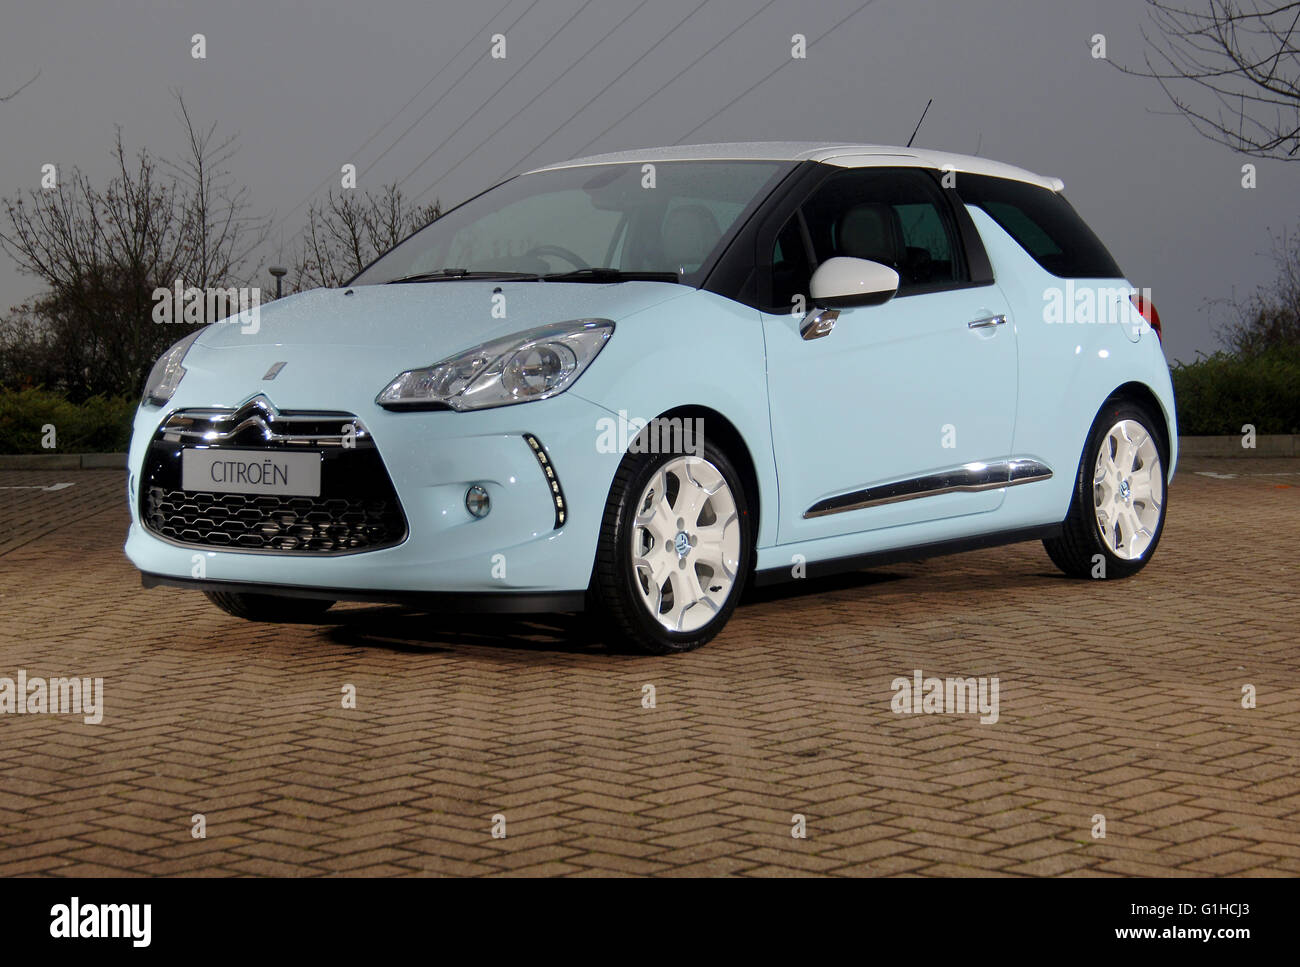 2009 Citroen DS3 sporty  French hatchback car - Stock Image